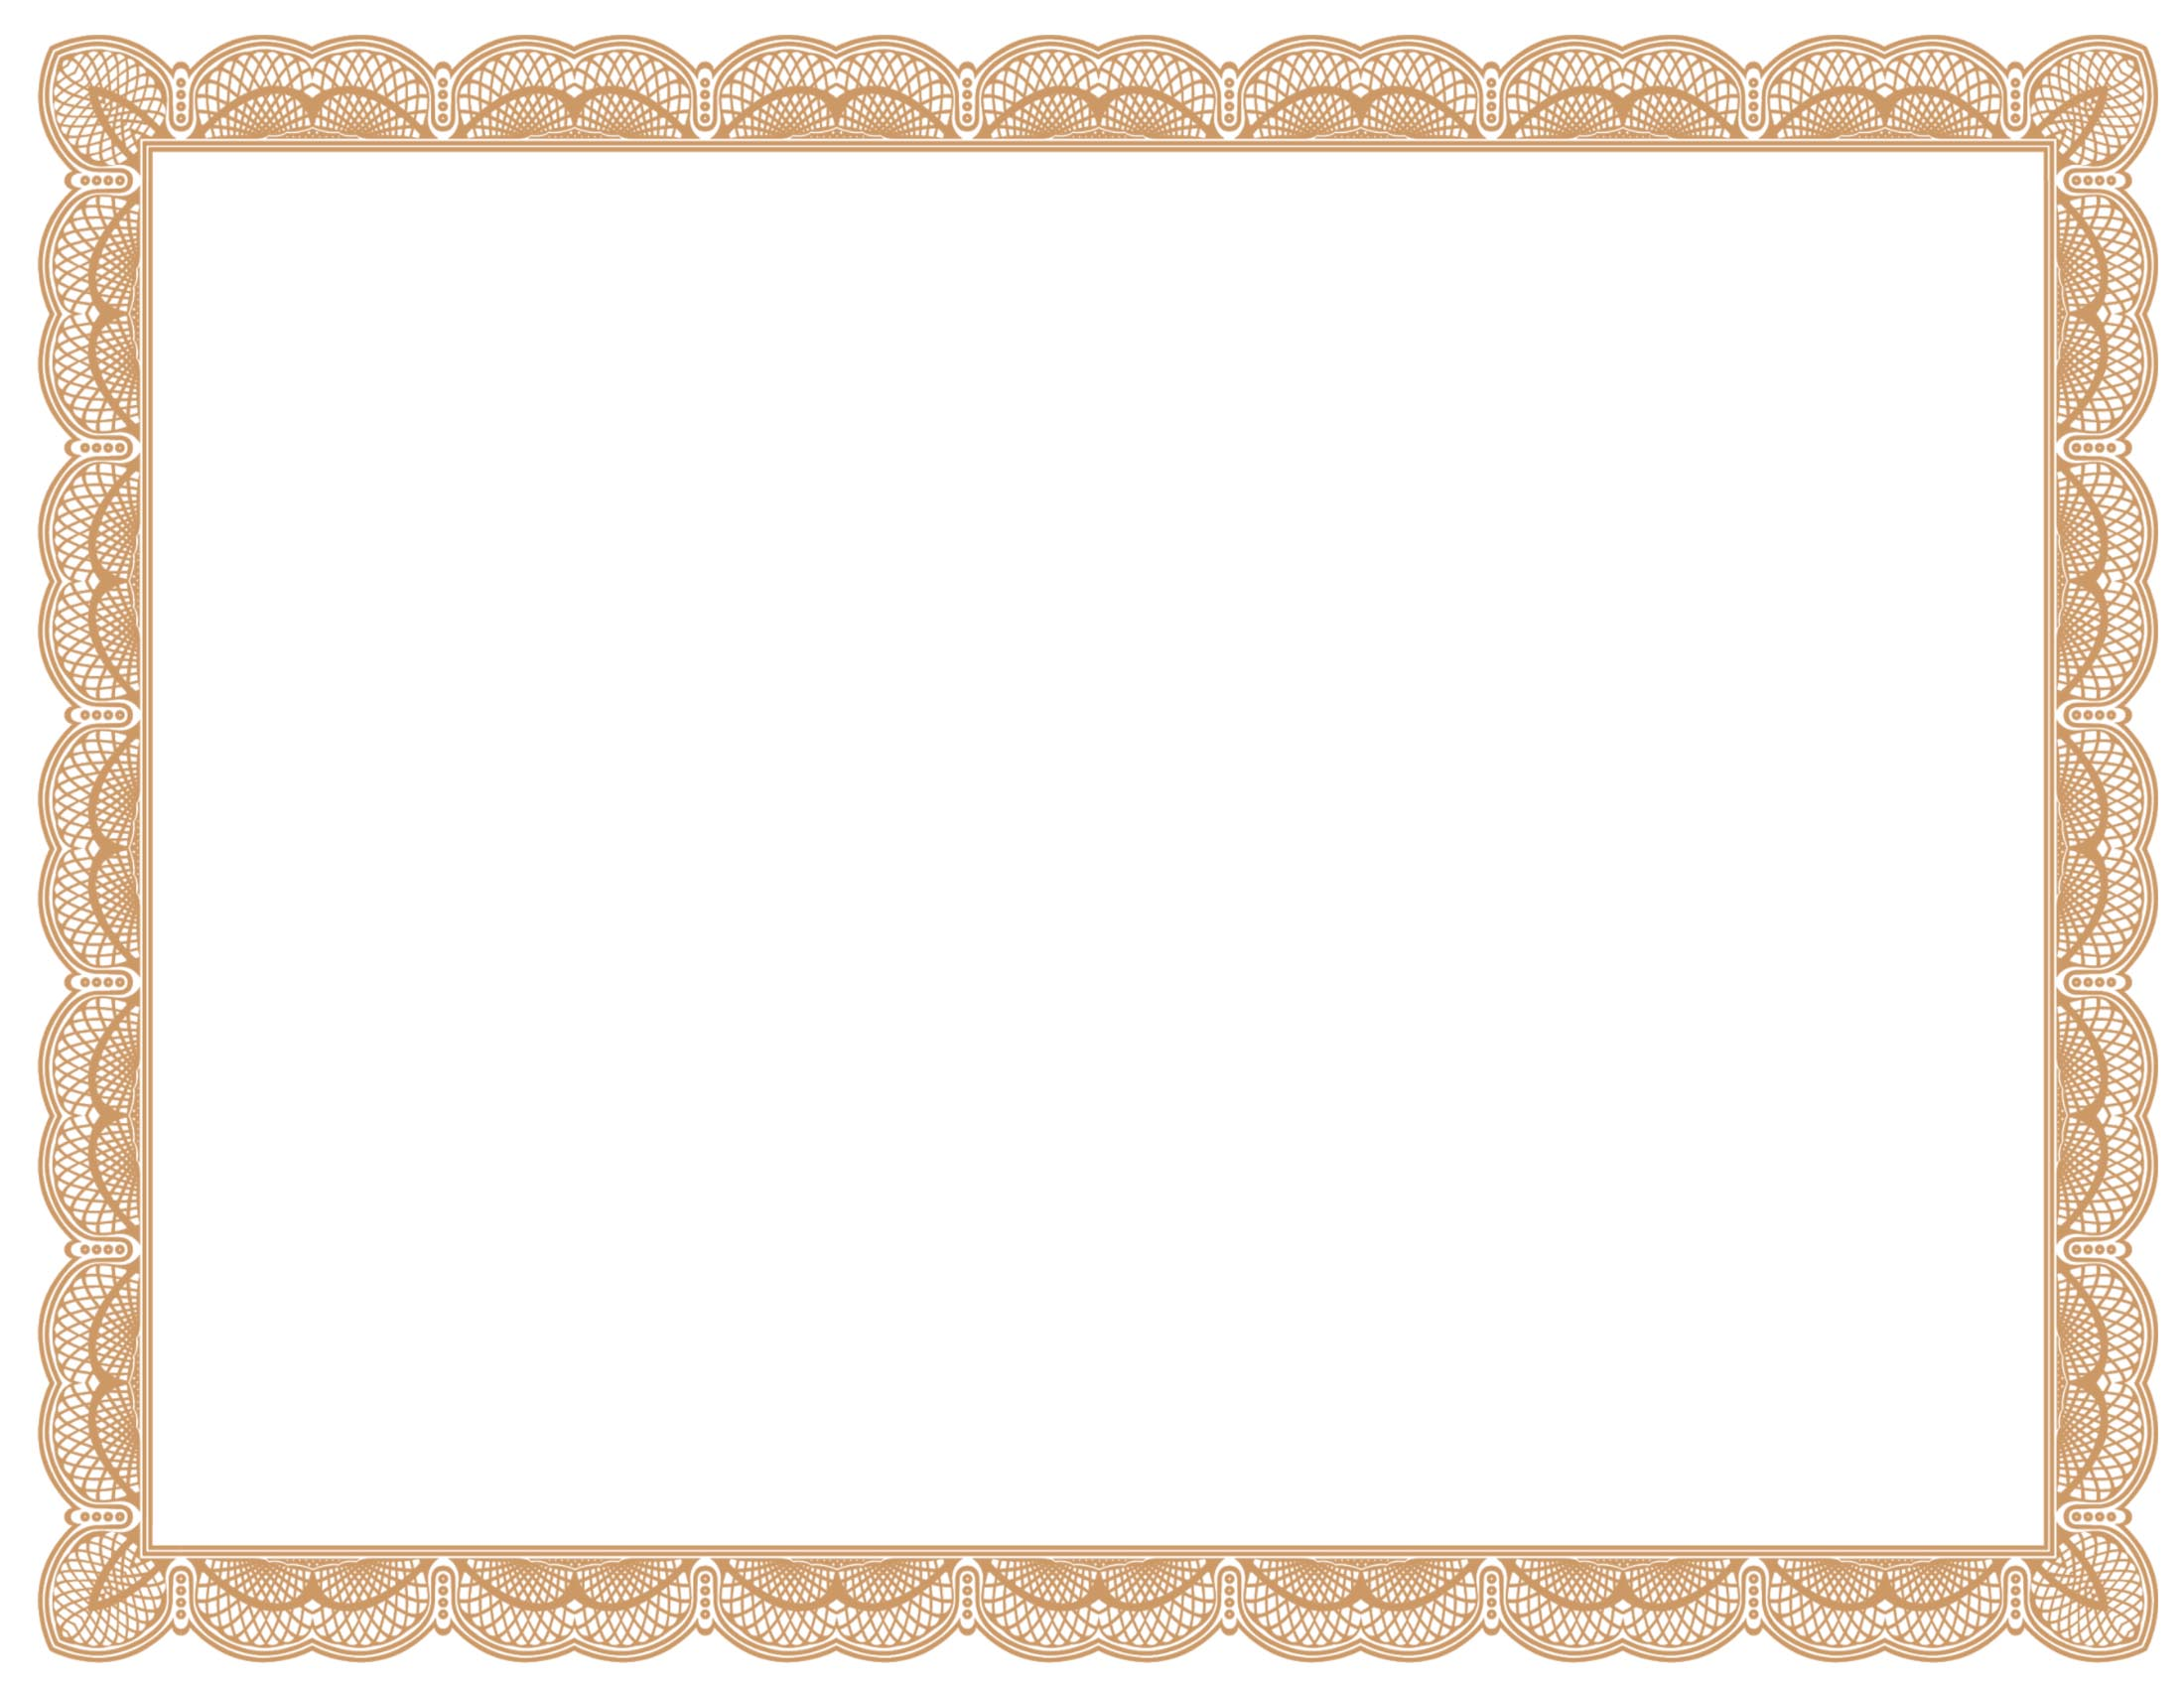 Certificate Borders Free Vector Art  4360 Free Downloads